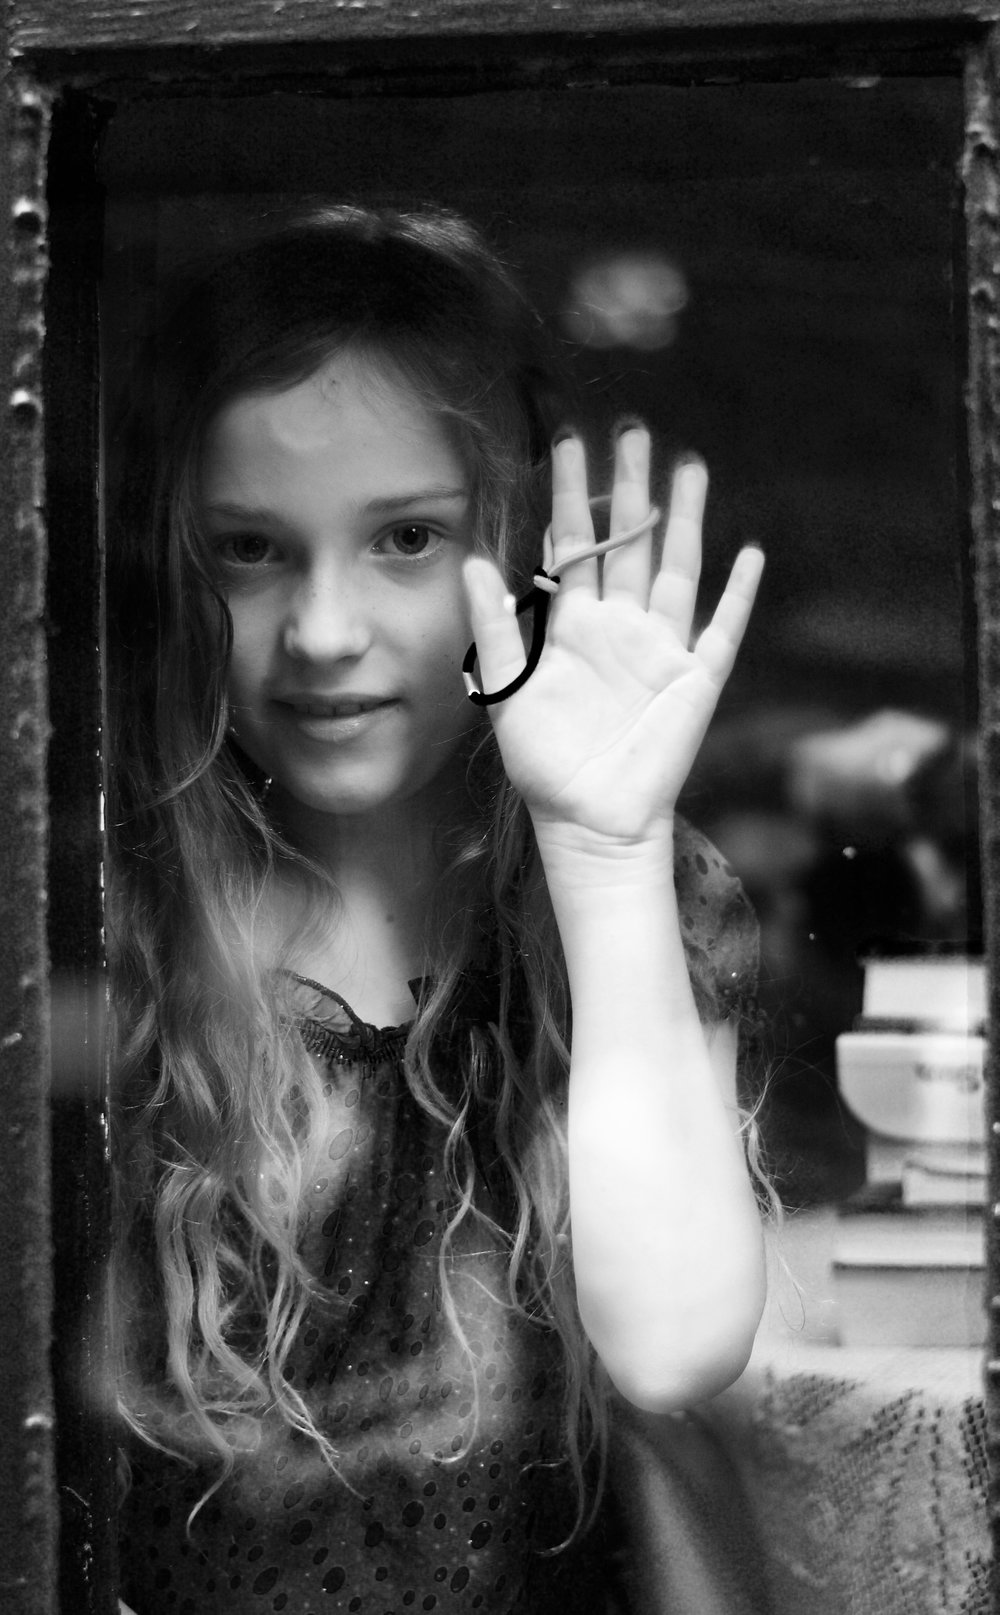 Life Through a Window (B/W). Madison, Wisconsin. July 2016. © William D. Walker